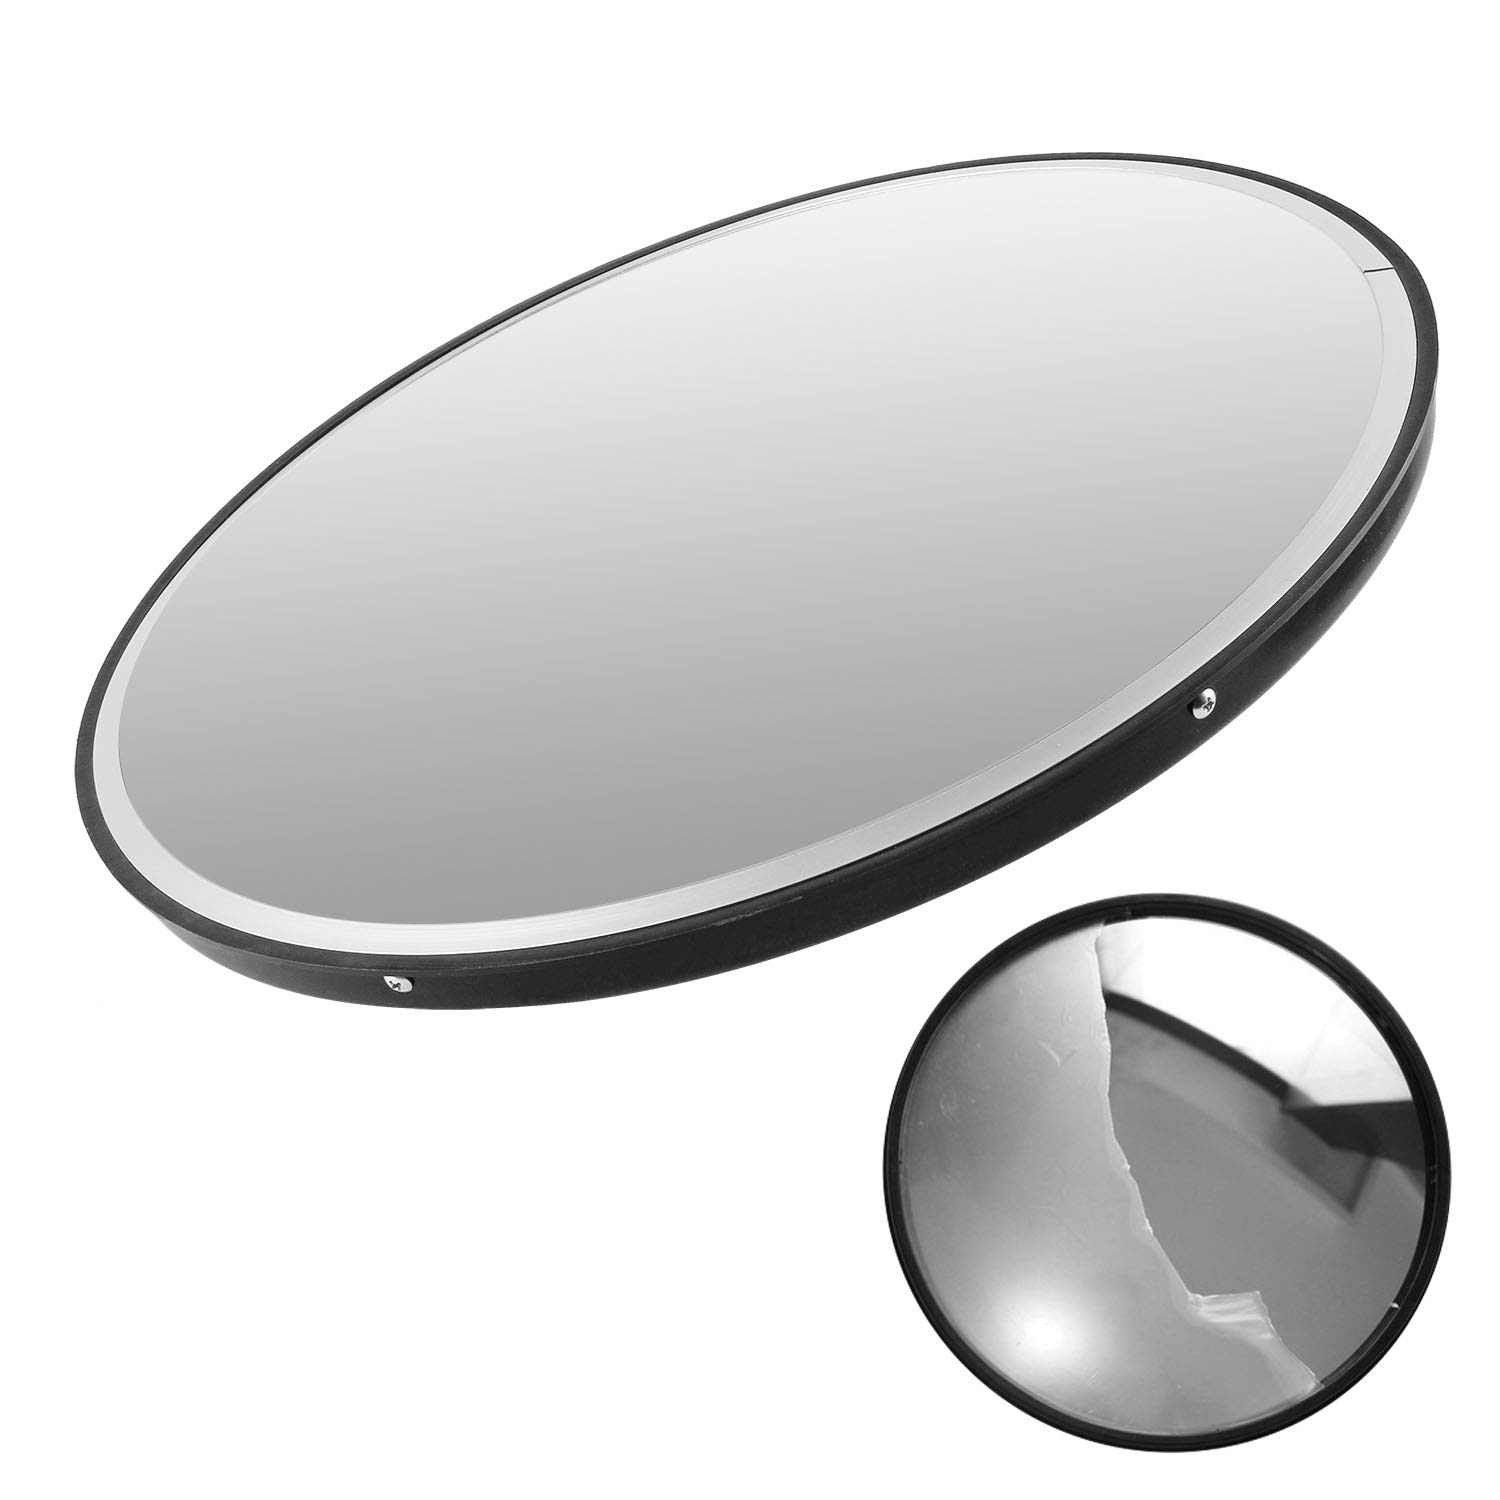 Convex Mirrors for Outdoor Use Black 30cm Surveillance Mirrors Safety Mirrors Premium Traffic Mirrors Weatherproof Panoramic Mirrors for Blind Spots